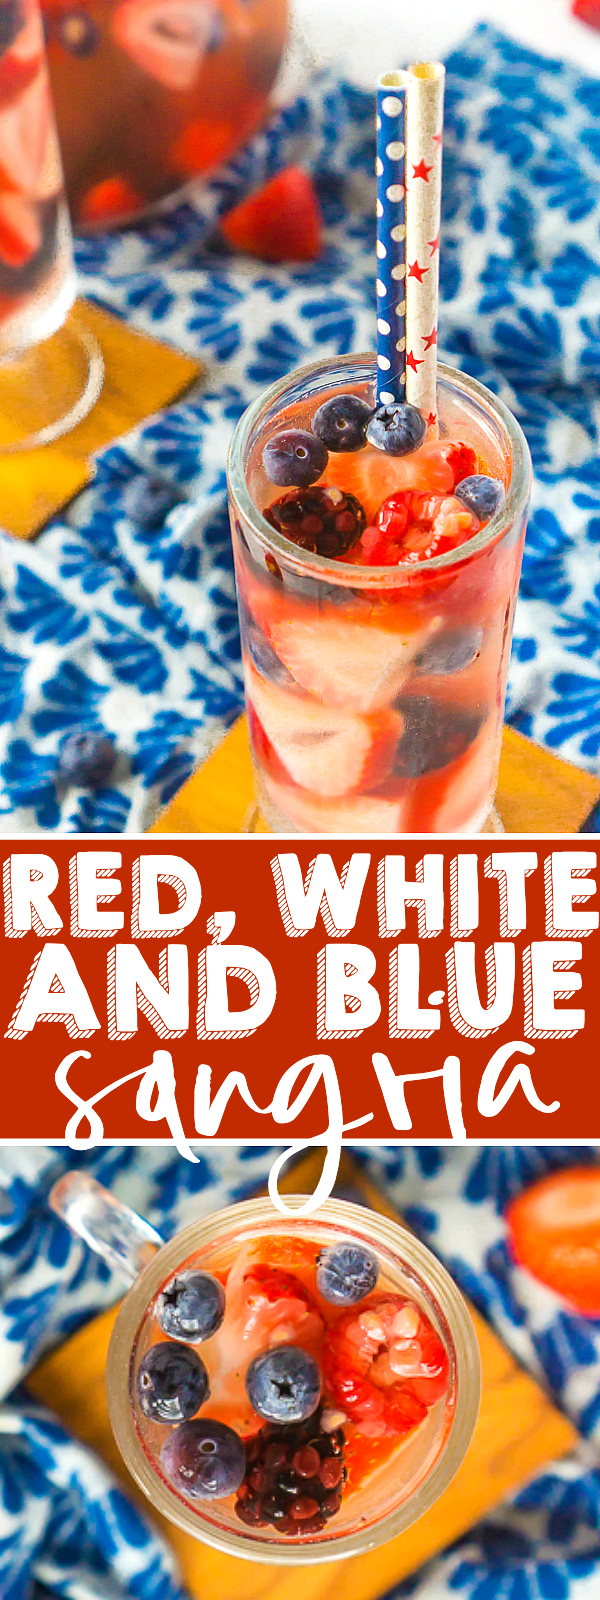 A Red White and Blue Sangria - Filled with delicious summer berries, this is the BEST Summer Sangria Recipe and the easiest 4th of July cocktail! It's light, refreshing and so easy to make and customize all summer long. Plus, it doesn't need to sit over night making it great for summer parties!  | THE LOVE NERDS #SANGRIARECIPE #SUMMERCOCKTAIL #WINECOCKTAIL